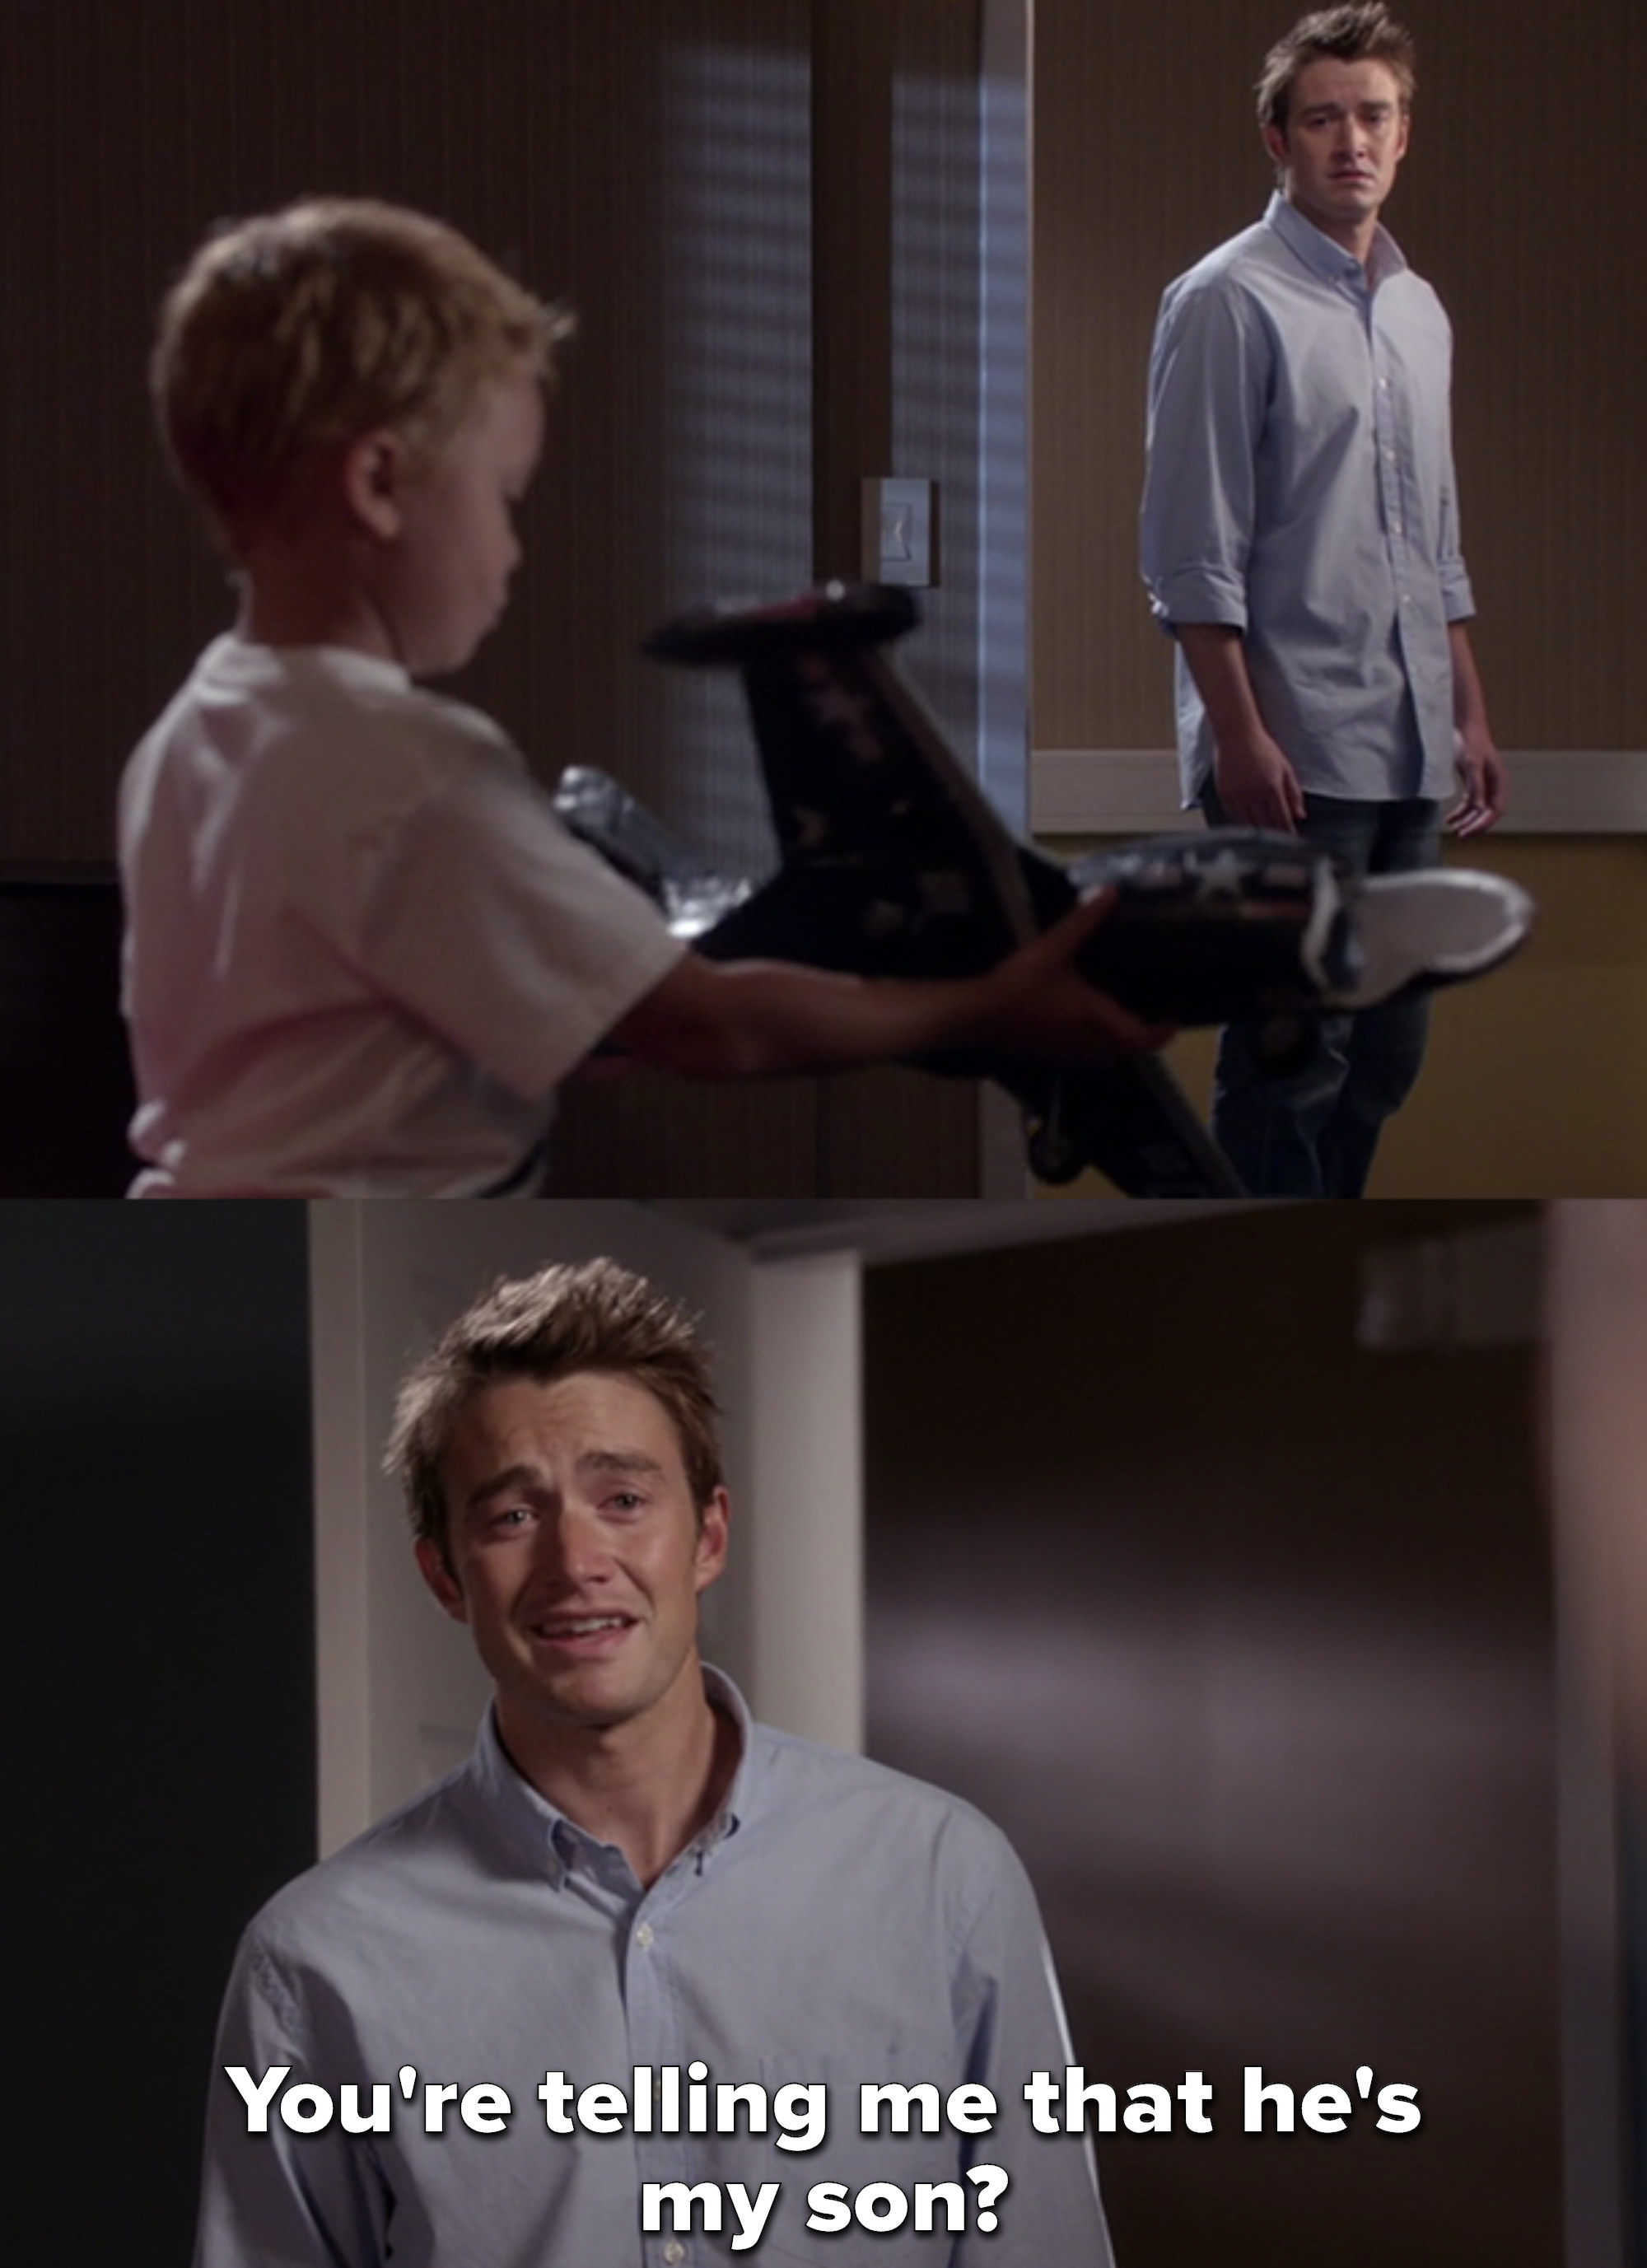 """Clay looking at Logan then saying """"You're telling me that he's my son?"""""""